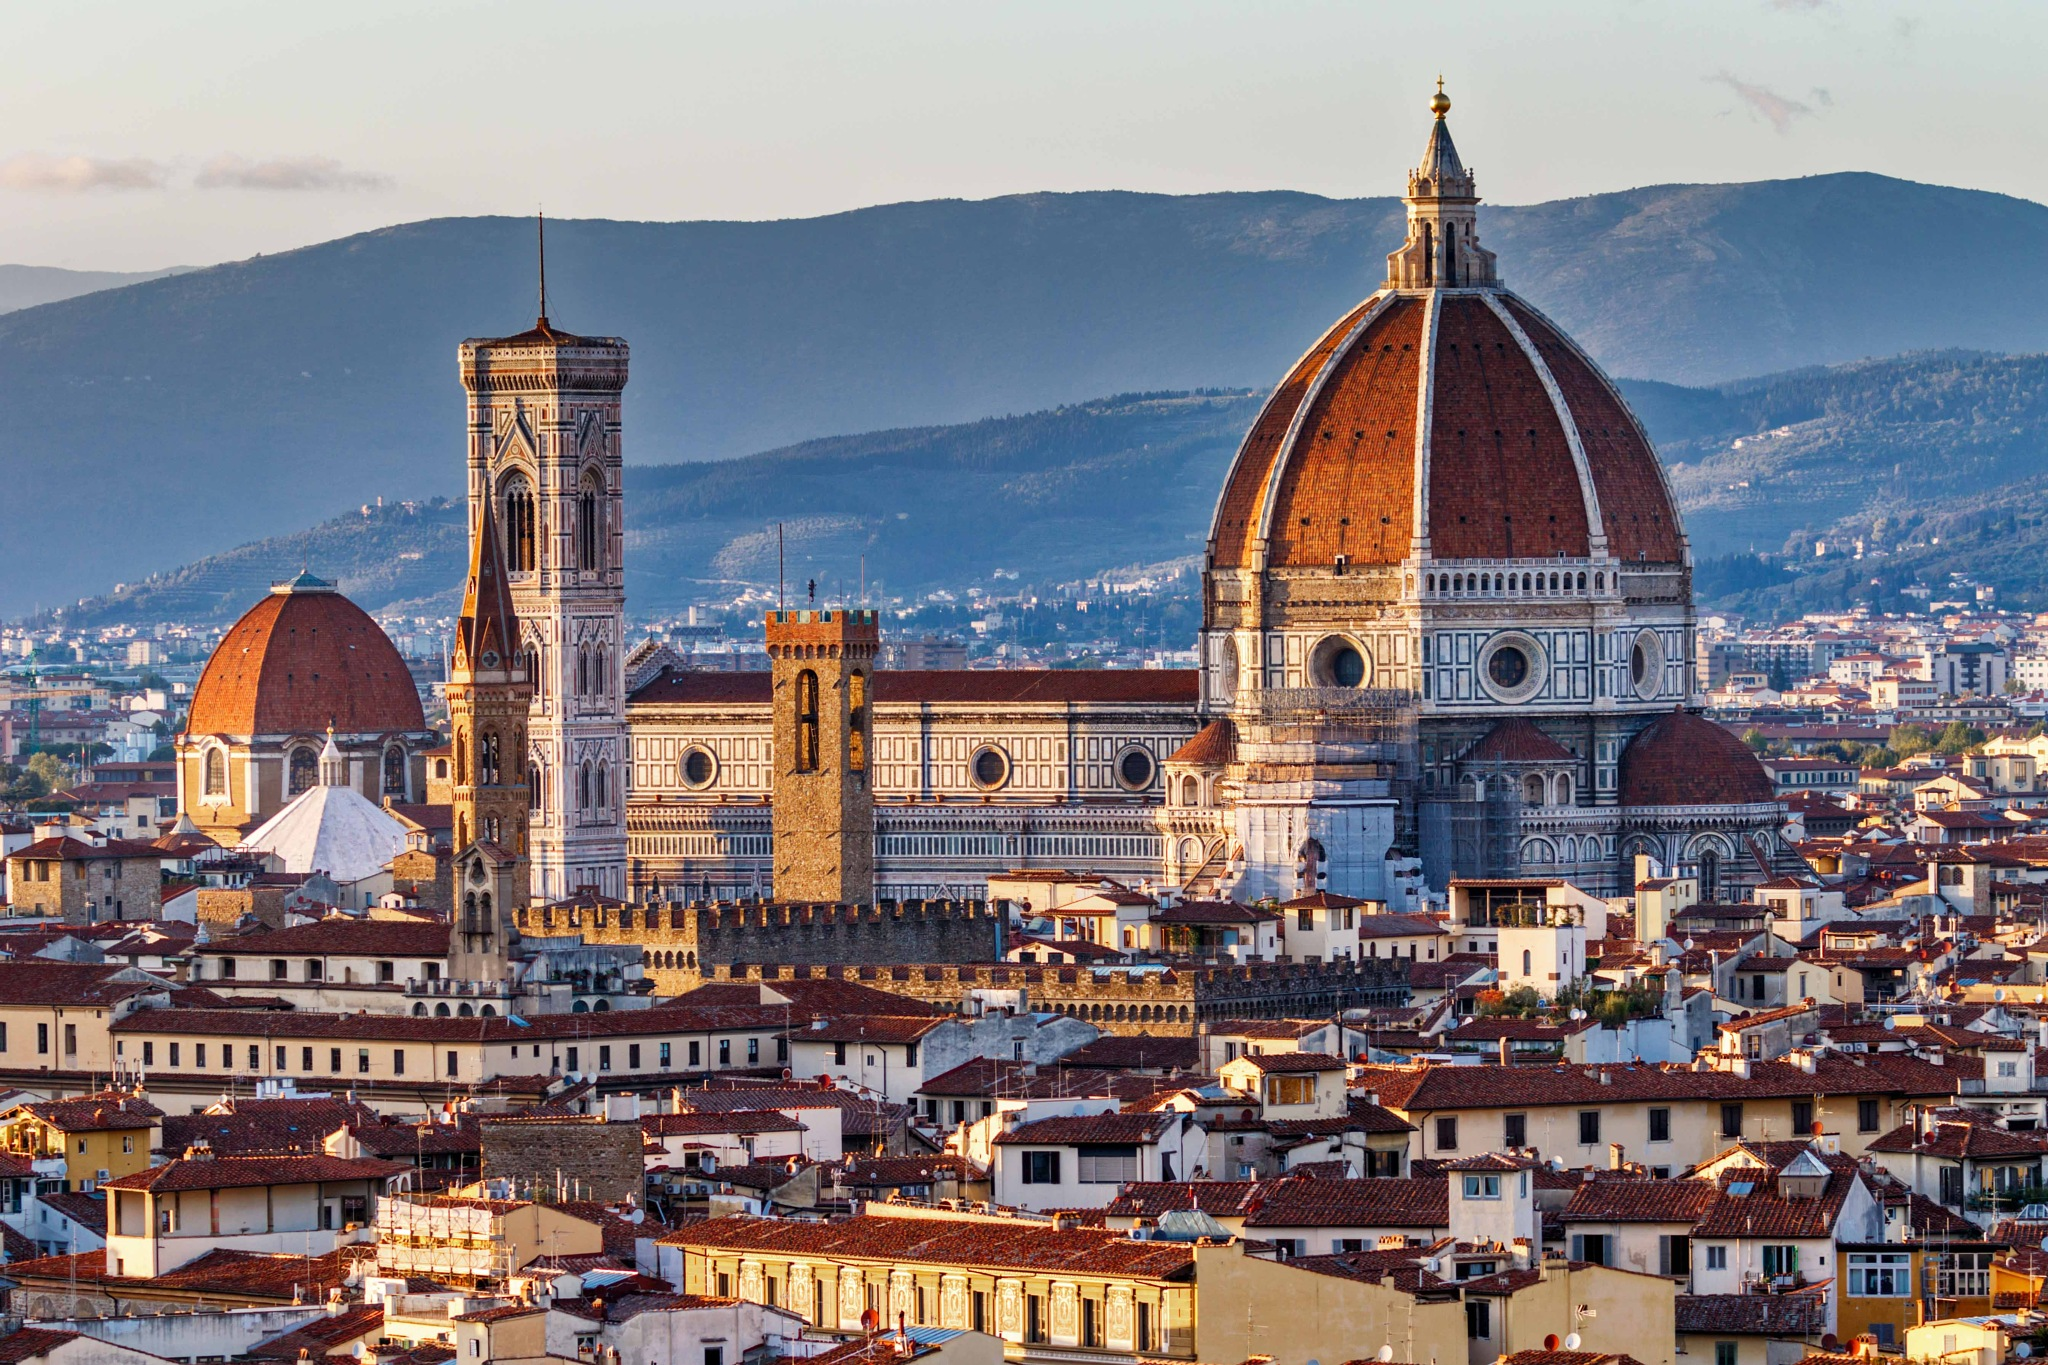 Sunset over the Duomo by Boris Droutman